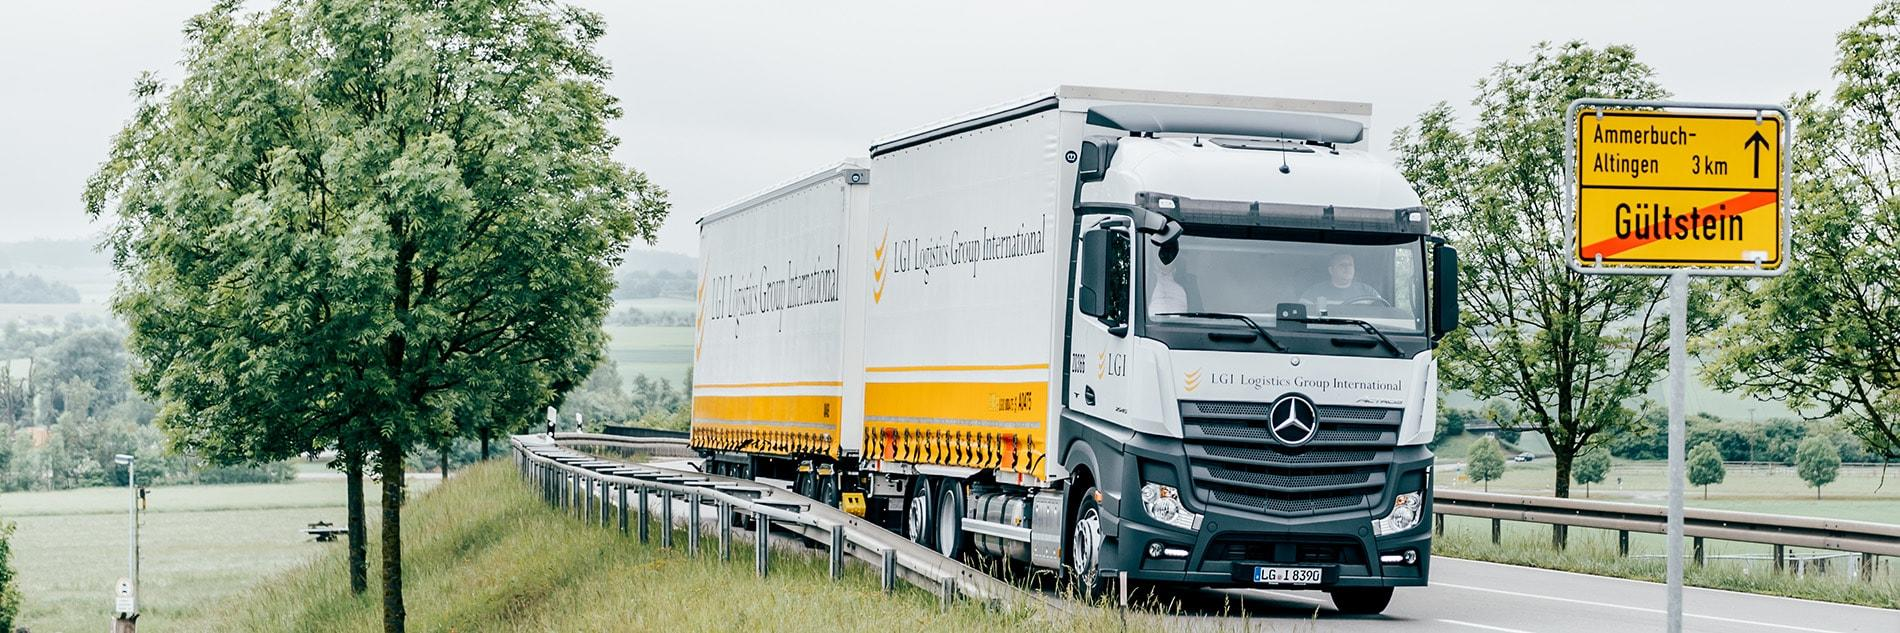 LGI - Transportpartner werden